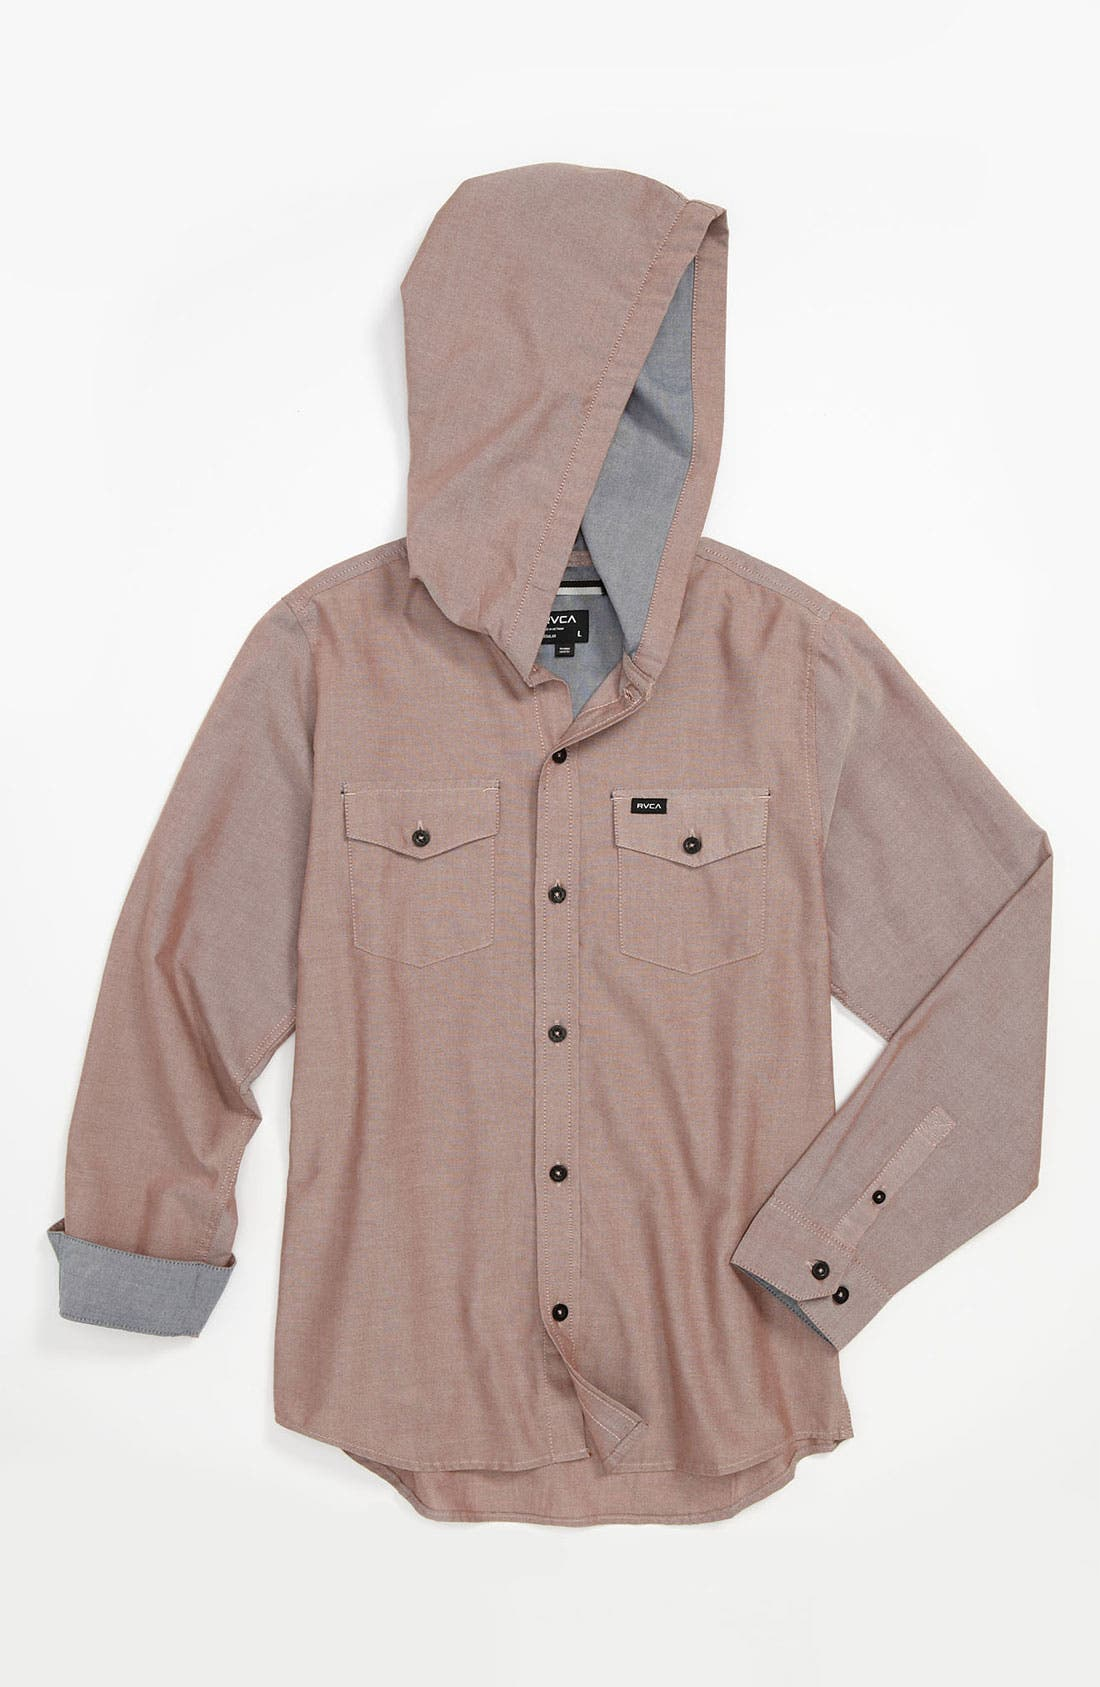 Alternate Image 1 Selected - RVCA 'Oxo' Hooded Woven Shirt (Big Boys)